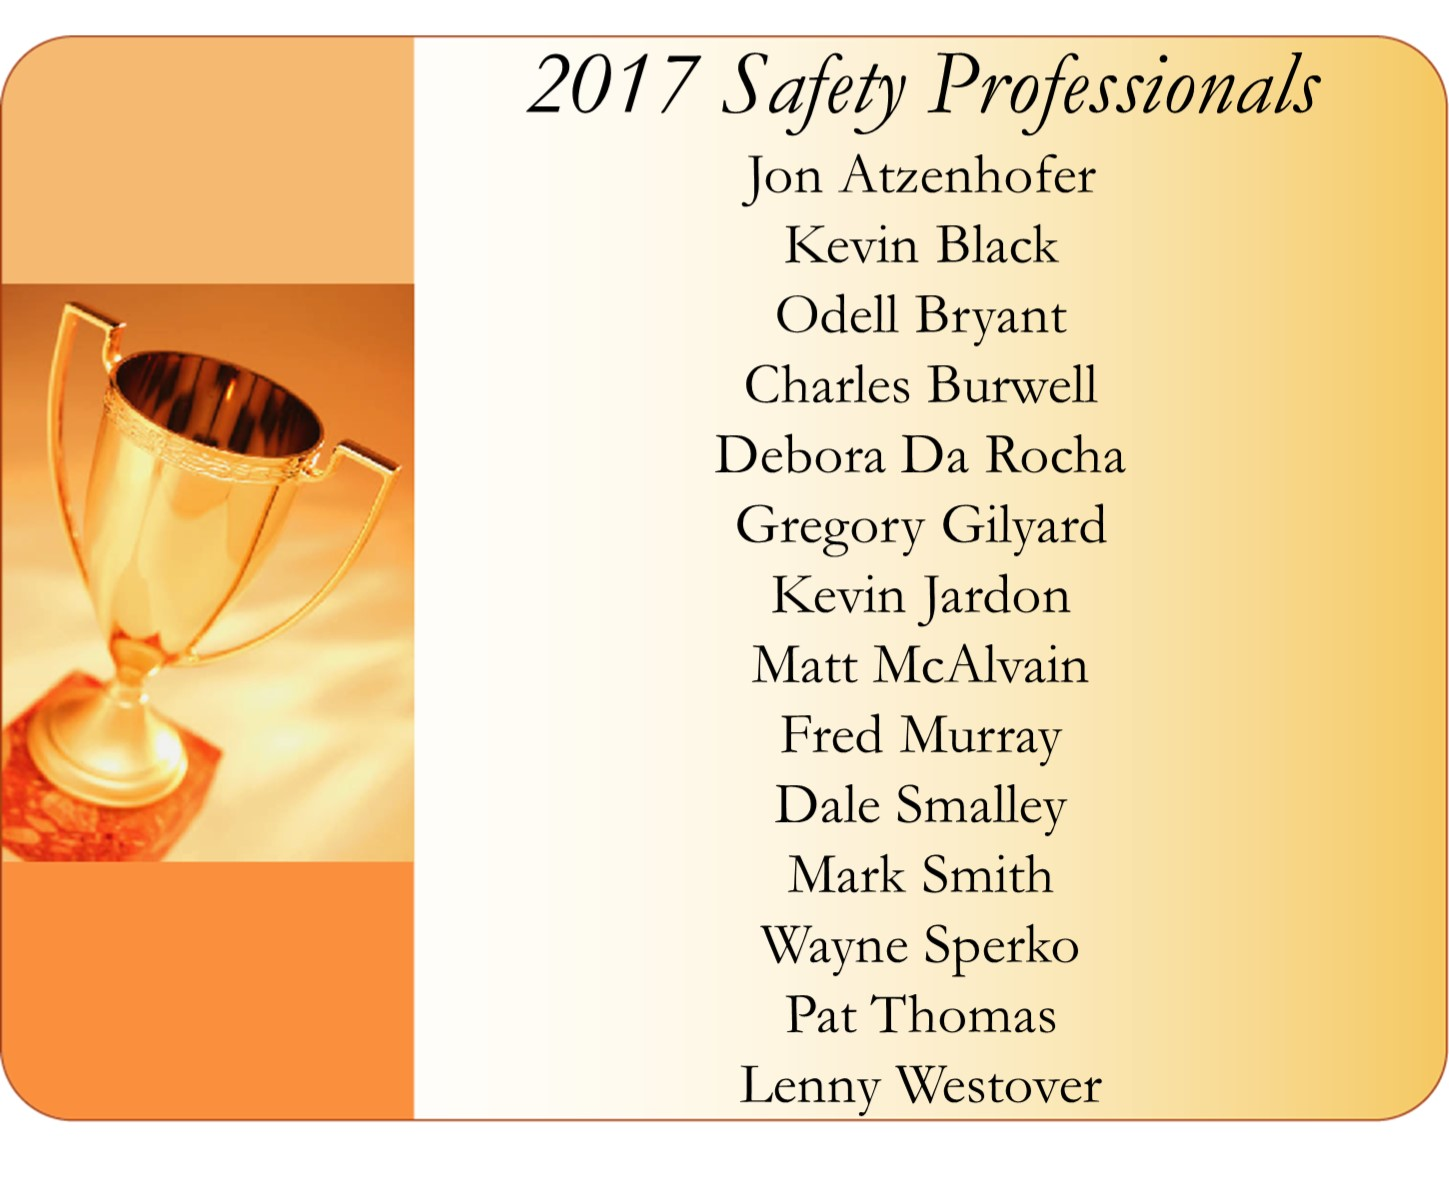 List of Drivers Who Achieved 2017 Safety Professional Awards